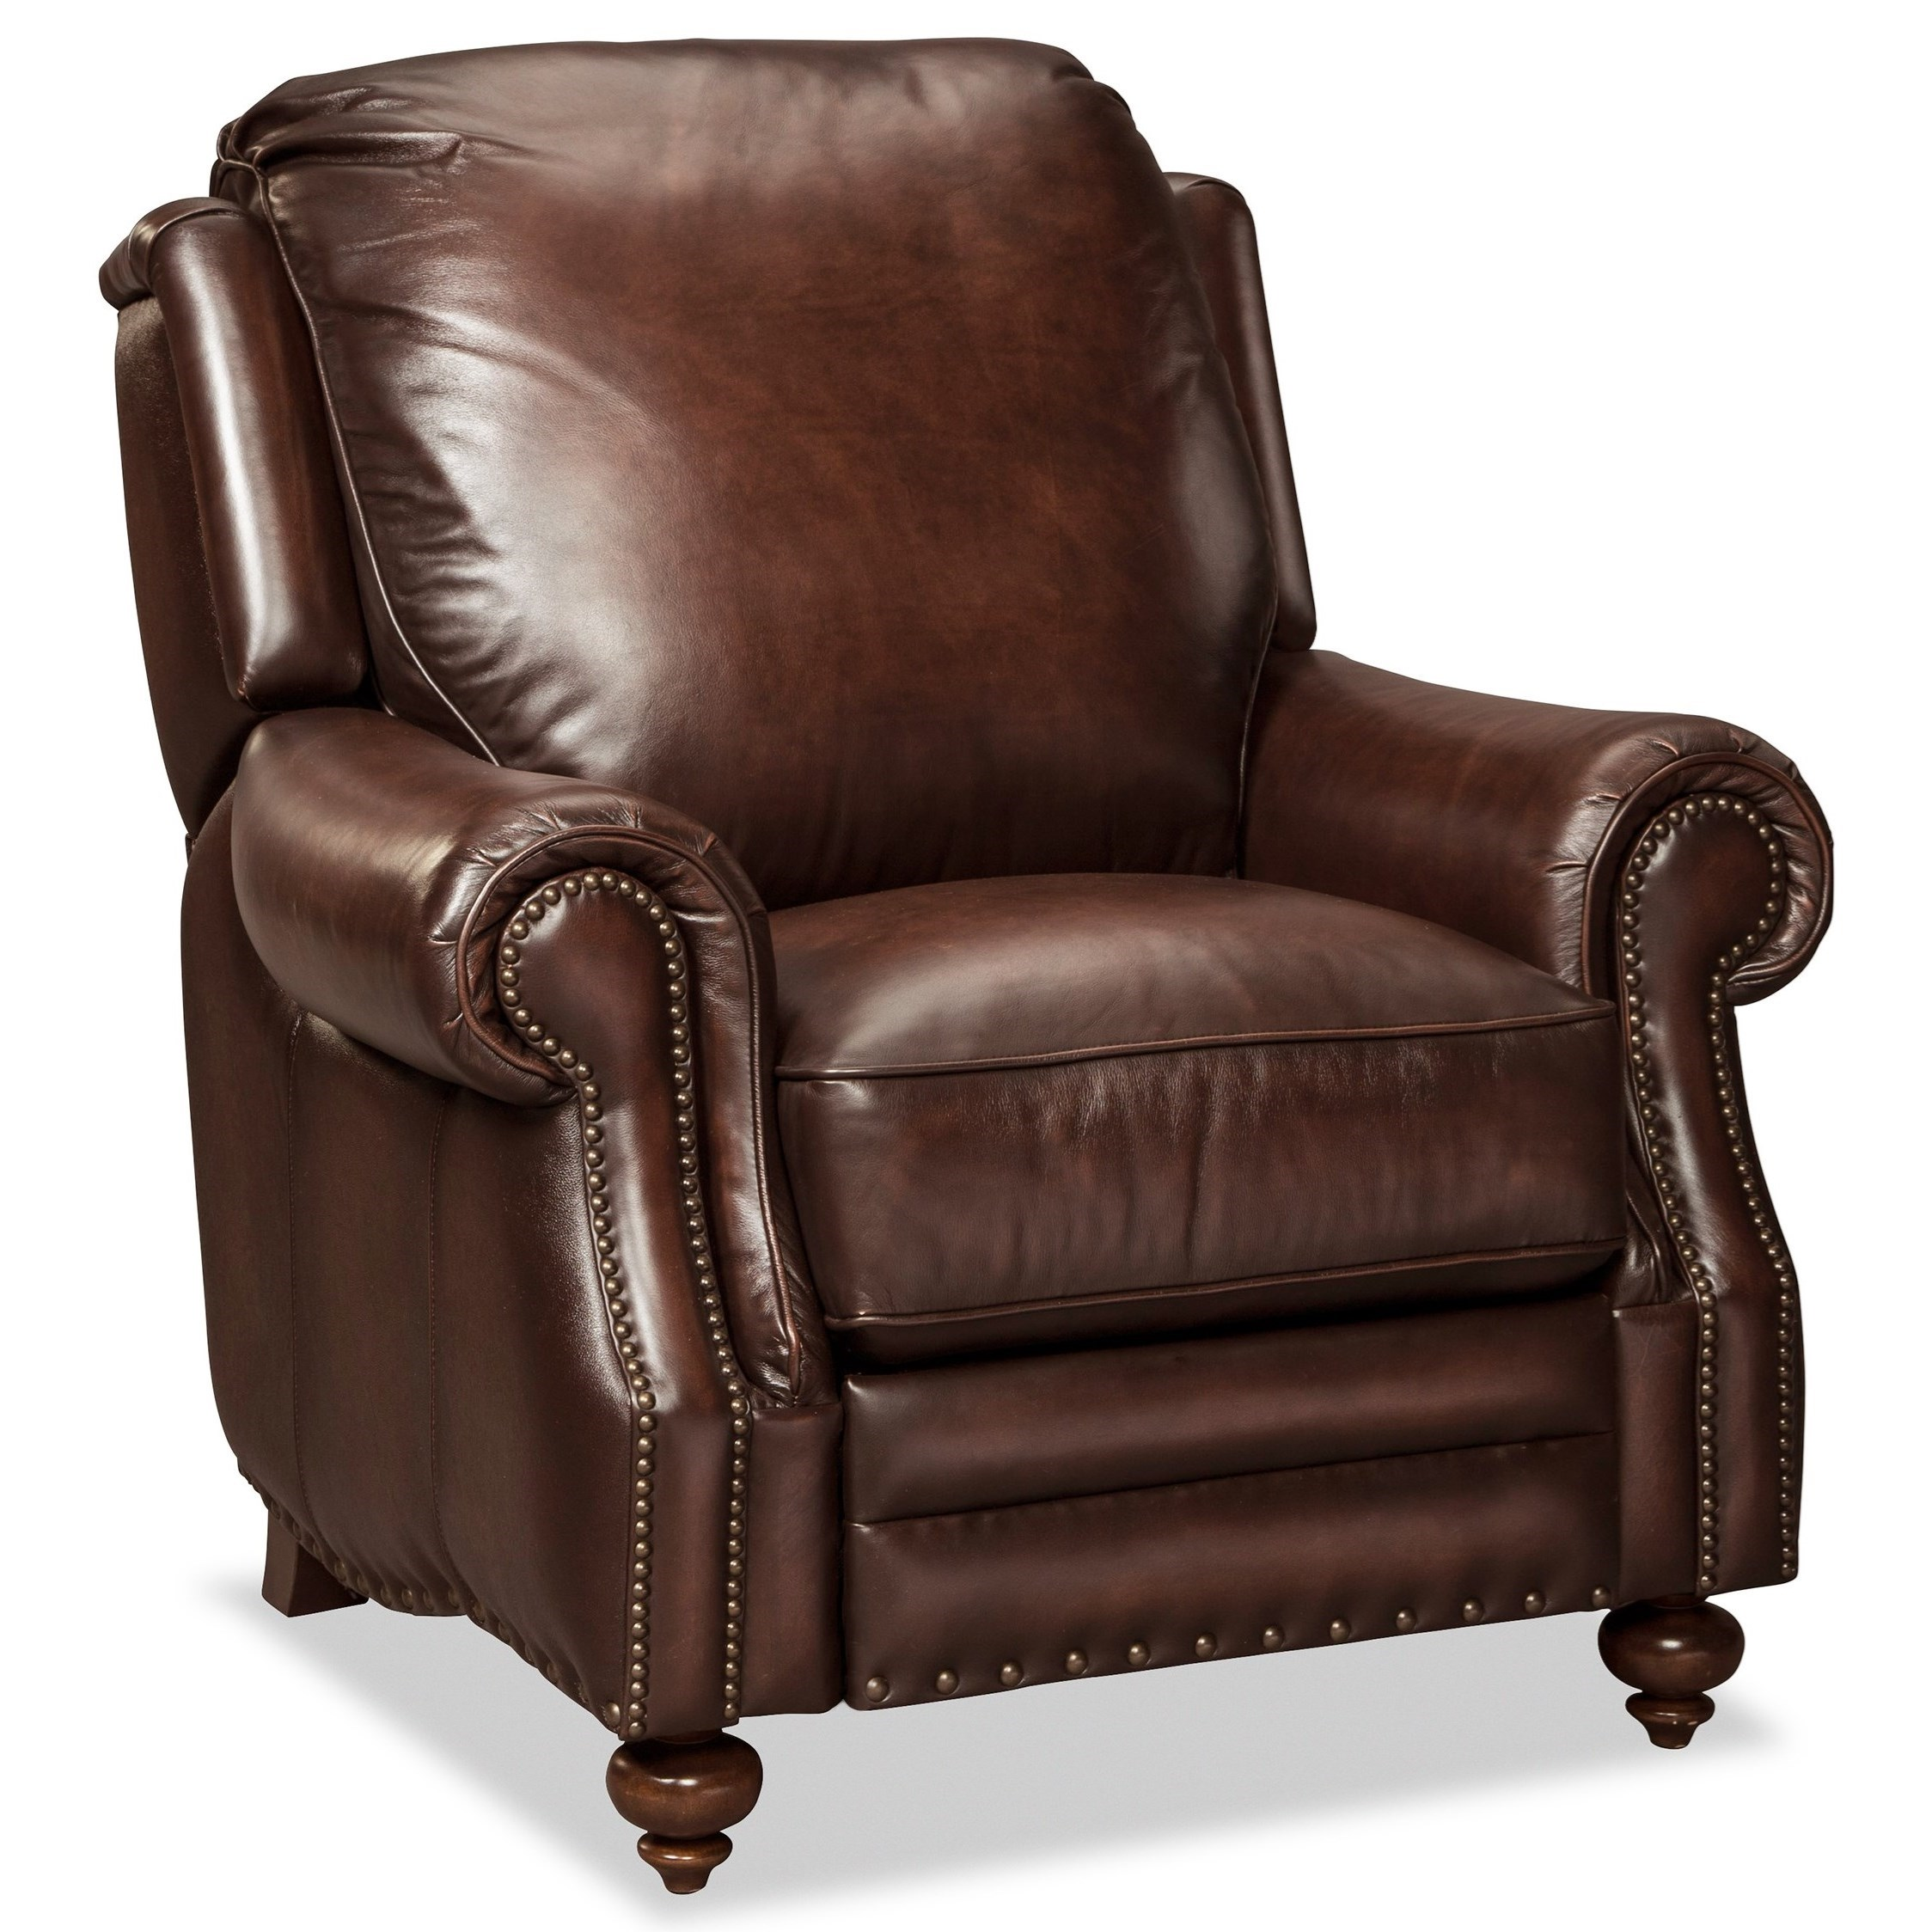 Craftmaster L171250 Craftmaster Traditional Leather